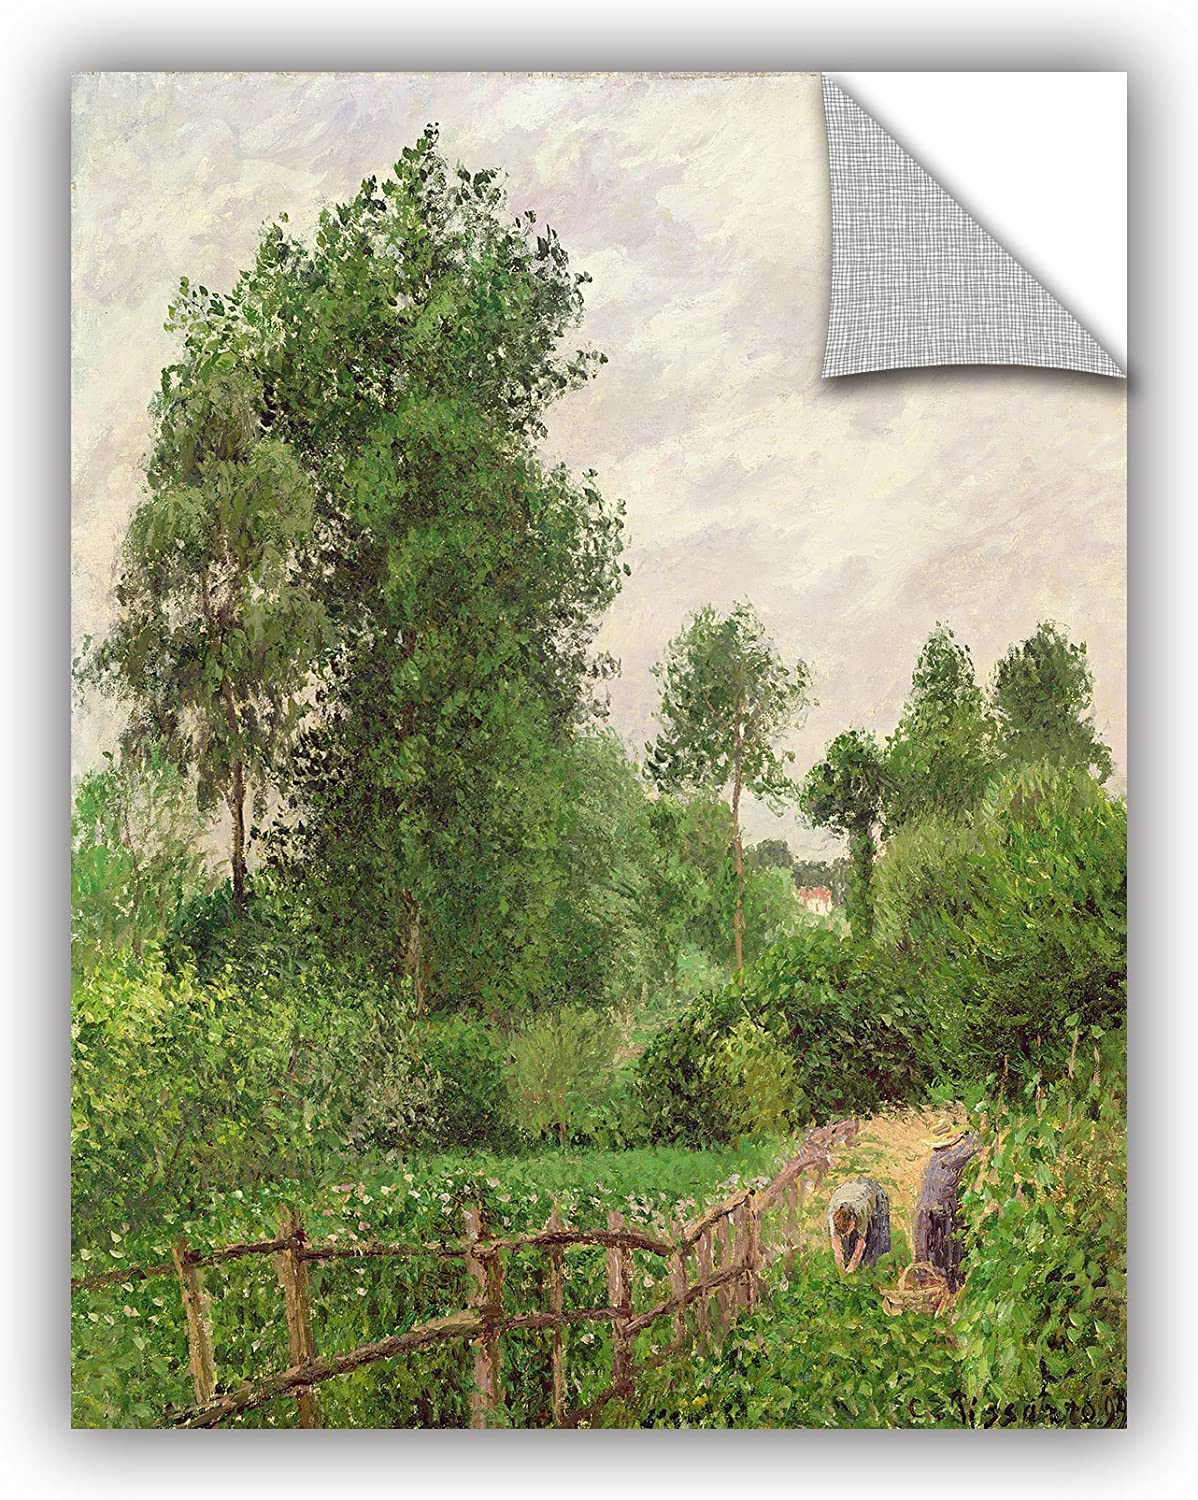 ArtWall Camille Pissarro's Paysage Temps grey A Eragny 1899 Removable Wall Art Mural, 14x18-Inch